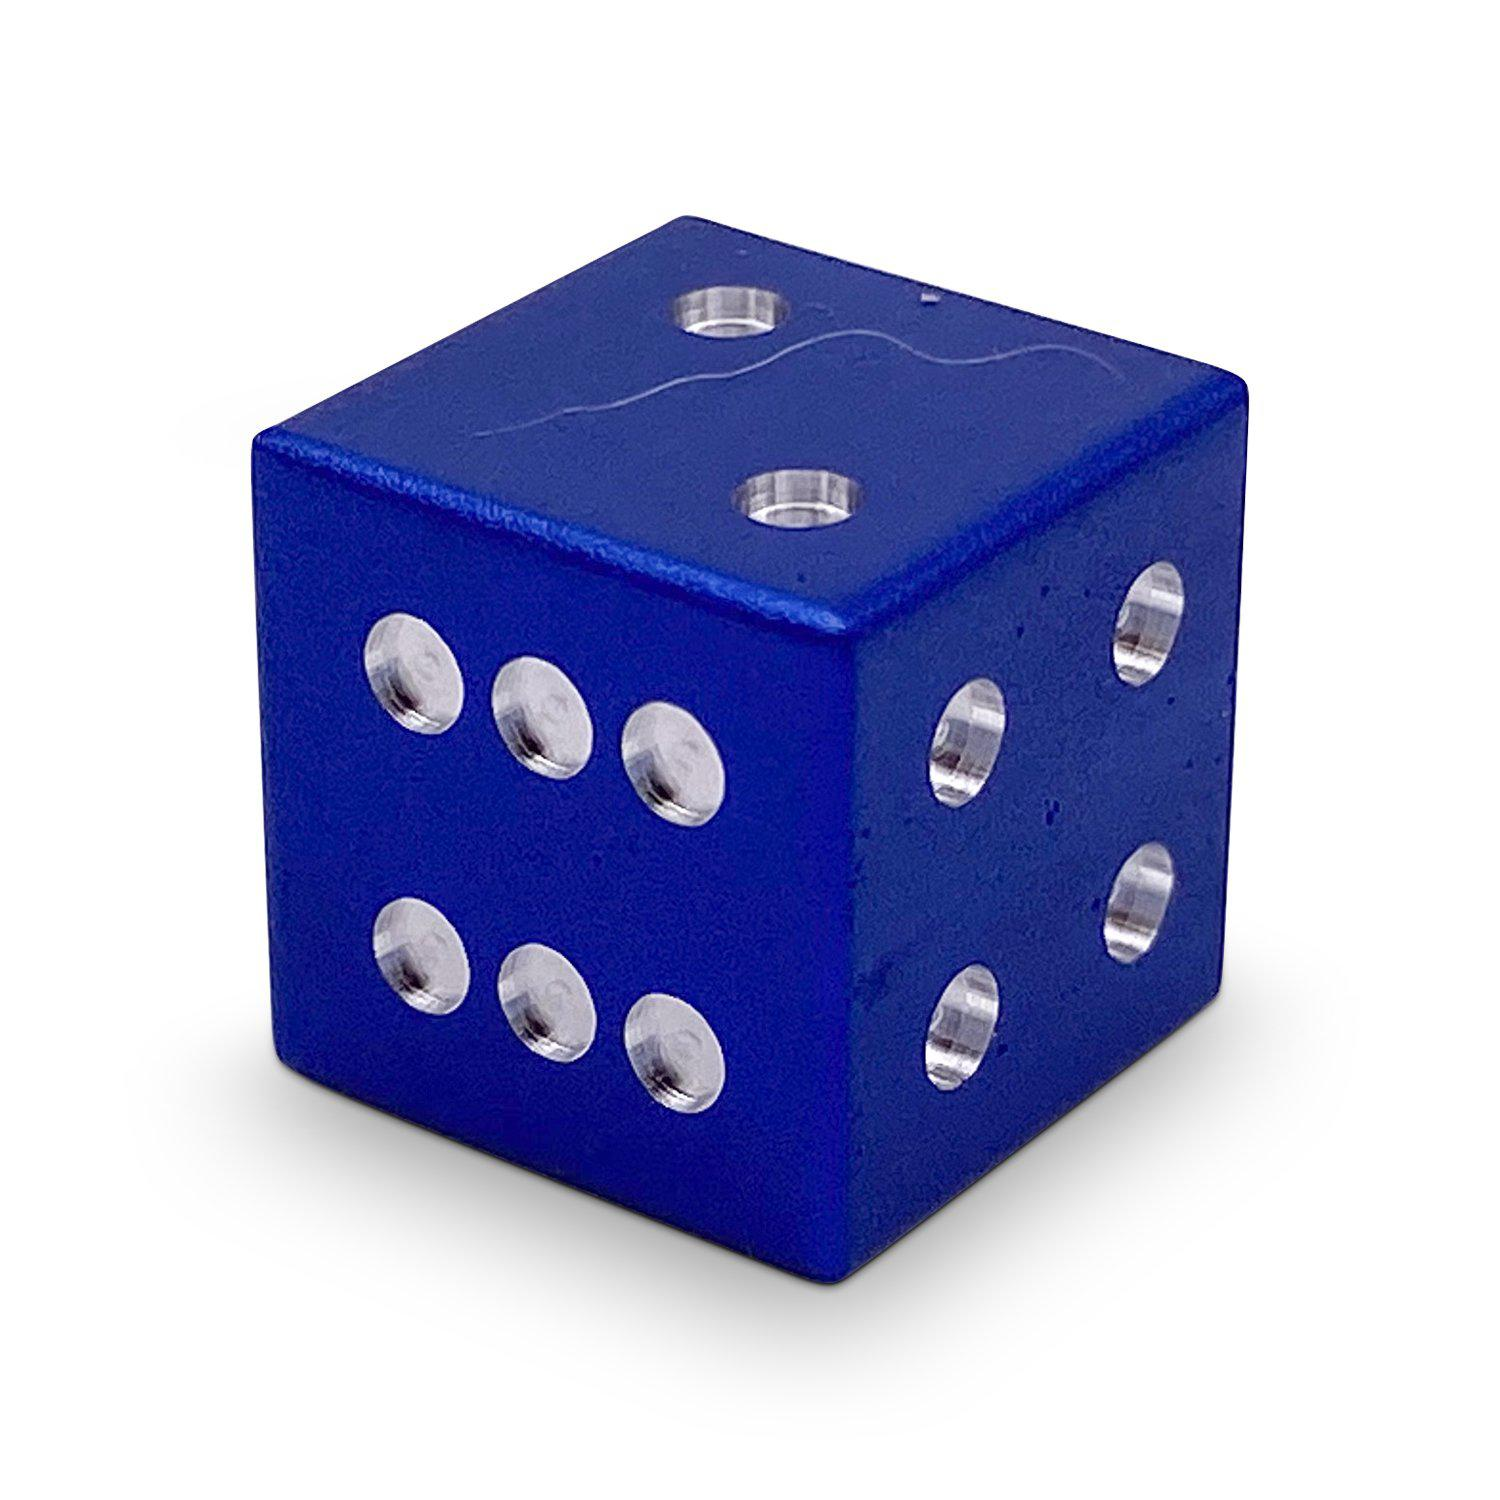 Single Aluminum D6 Mini - Straight Edges - Noble Blue